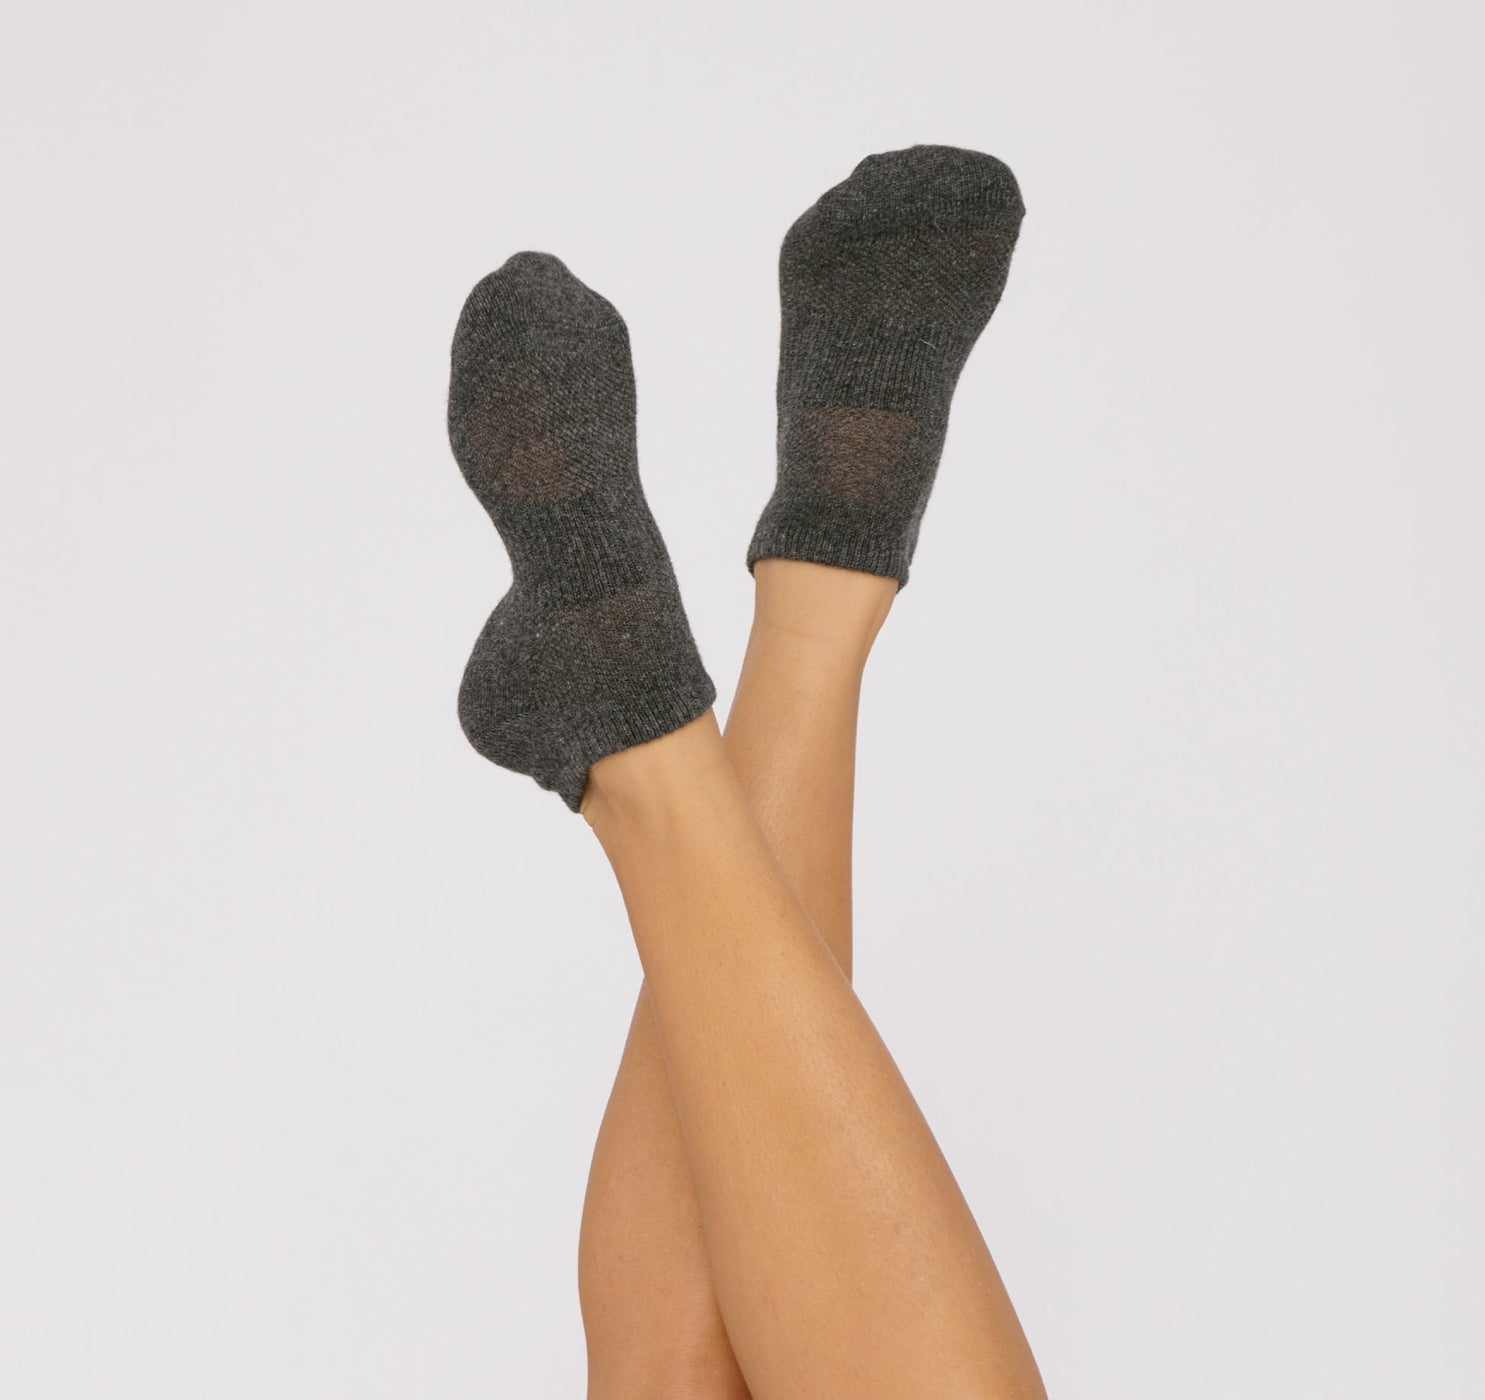 SilverTech™ Active Ankle Socks